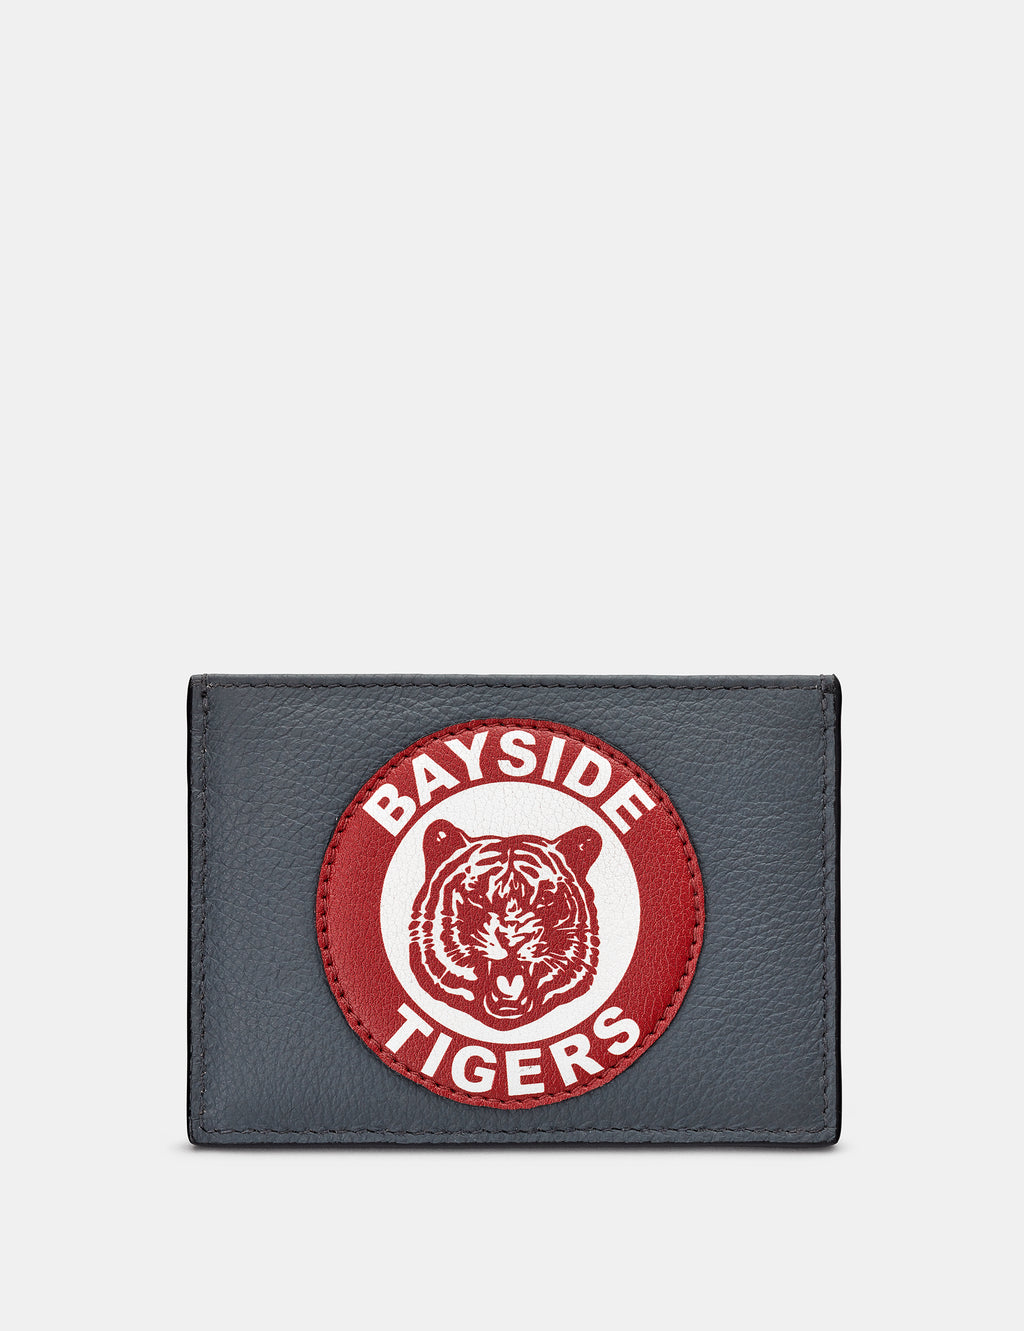 Bayside Tigers Slim Grey Leather Card Holder